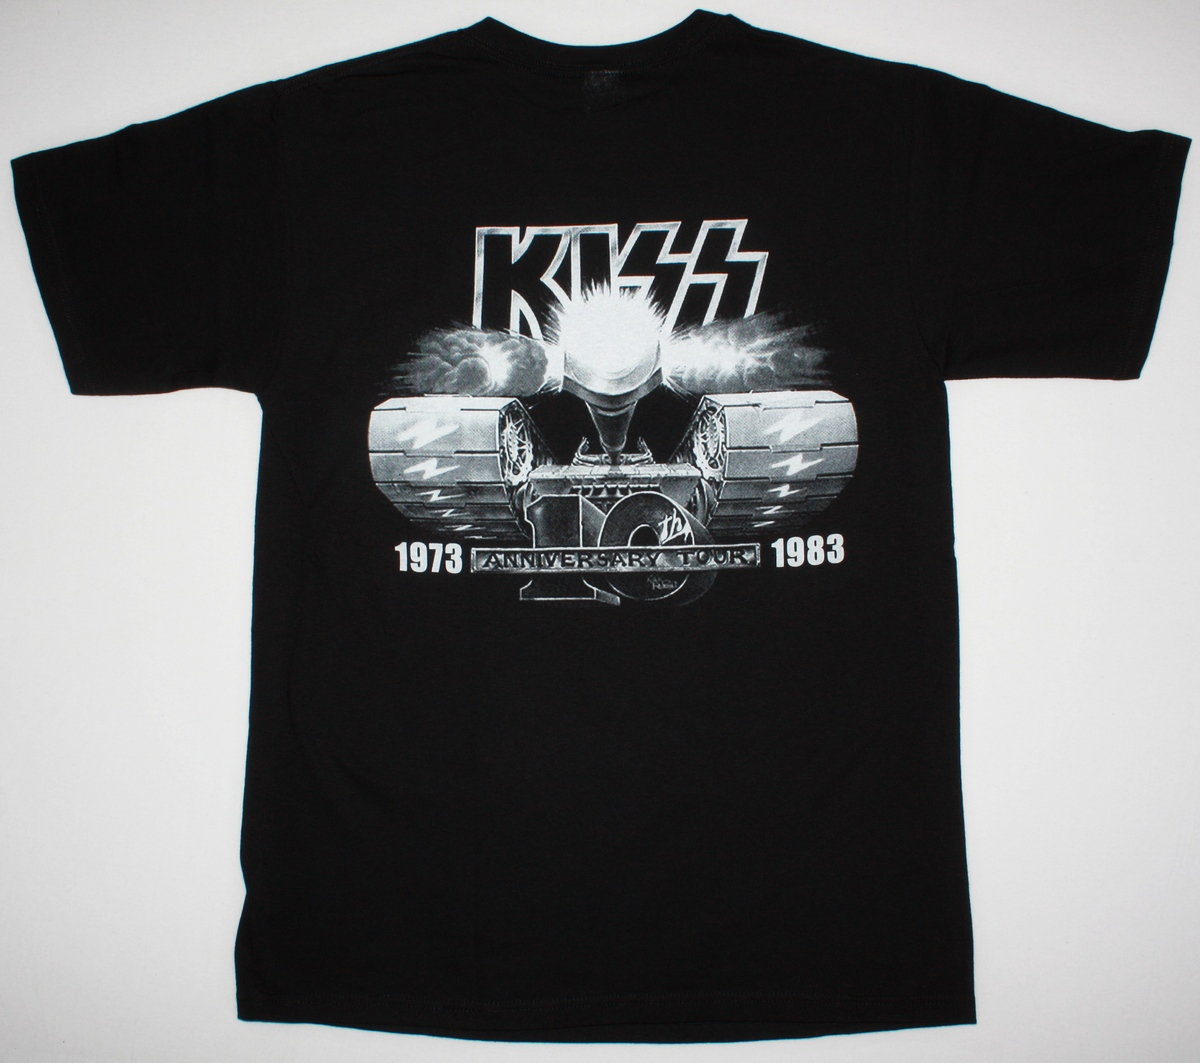 KISS CREATURES OF THE NIGHT ANNIVERSARY TOUR 1983 NEW BLACK T-SHIRT